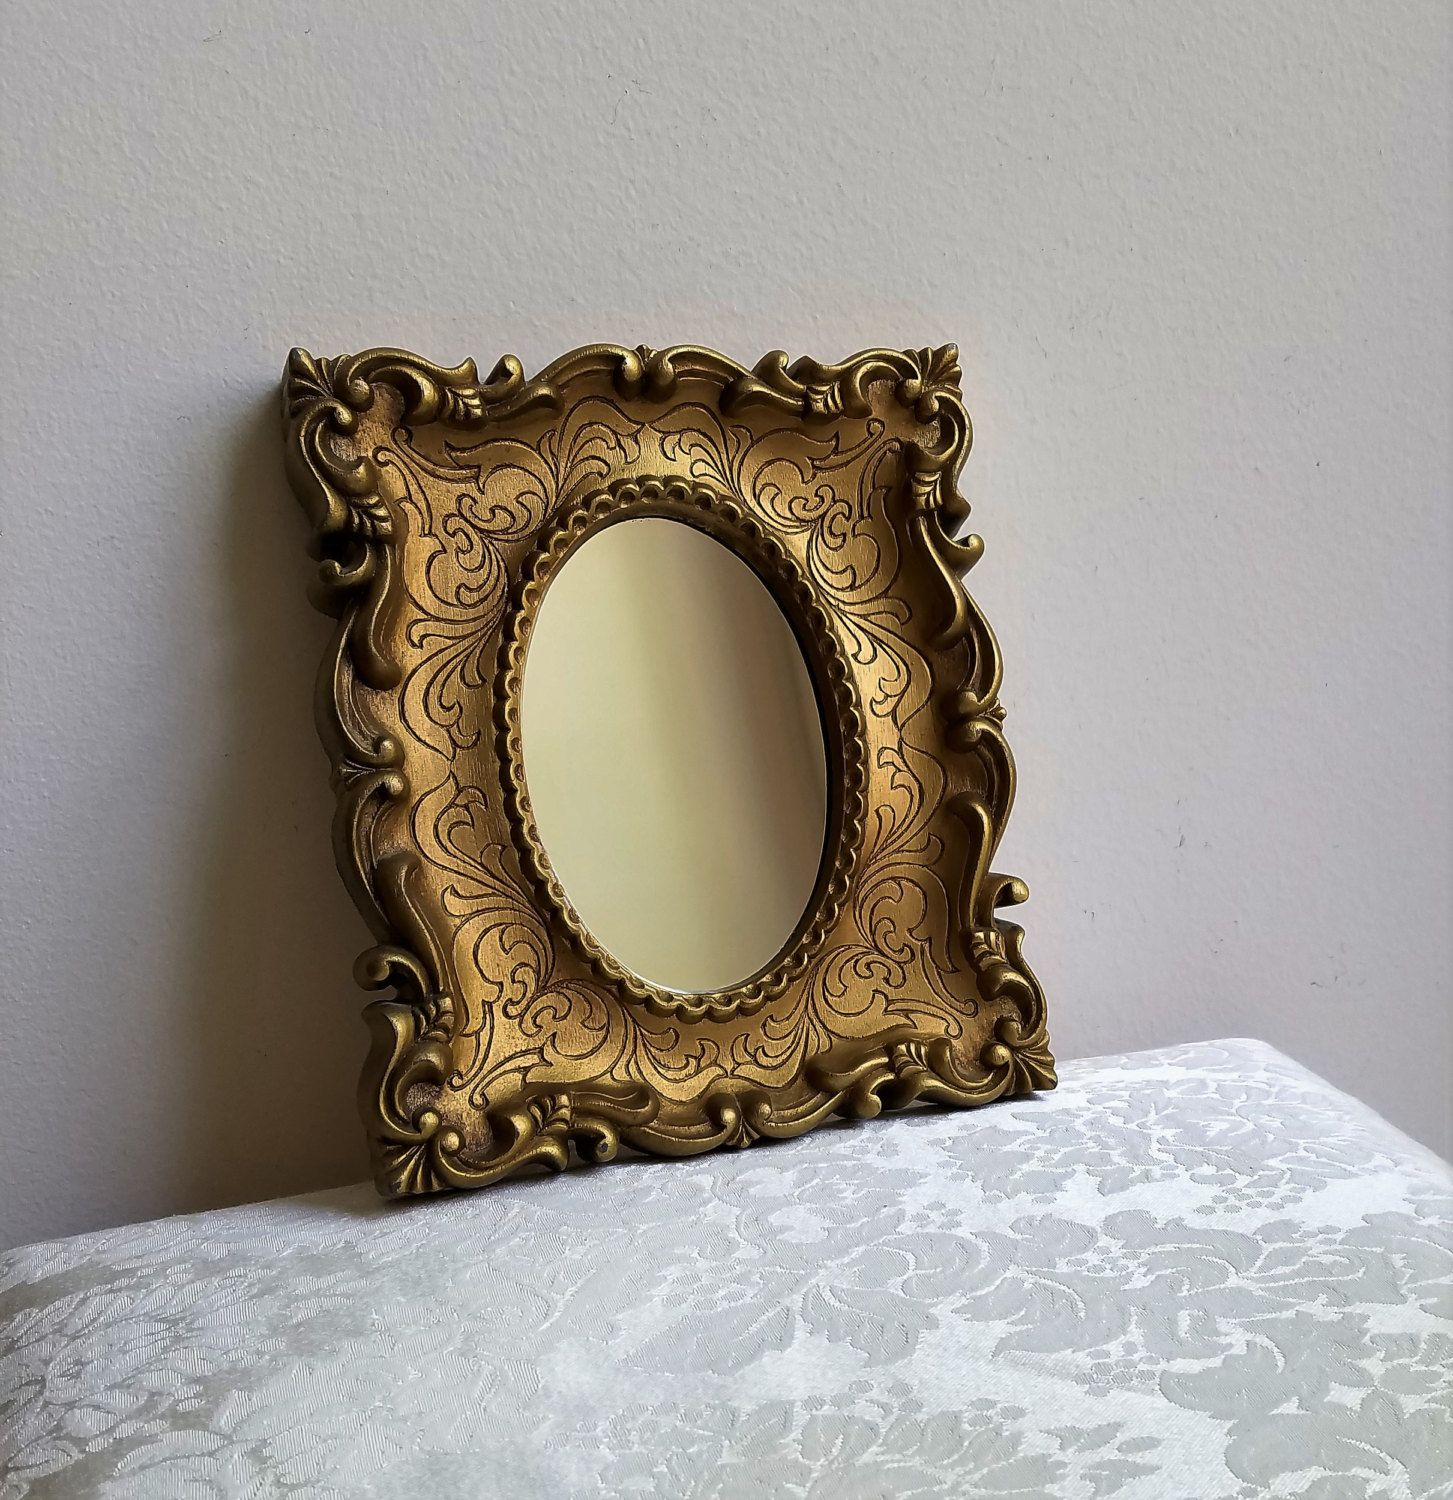 Vintage Ornate Gold Wall Mirror, Faux Carved Wood With Fleur de Lis ...